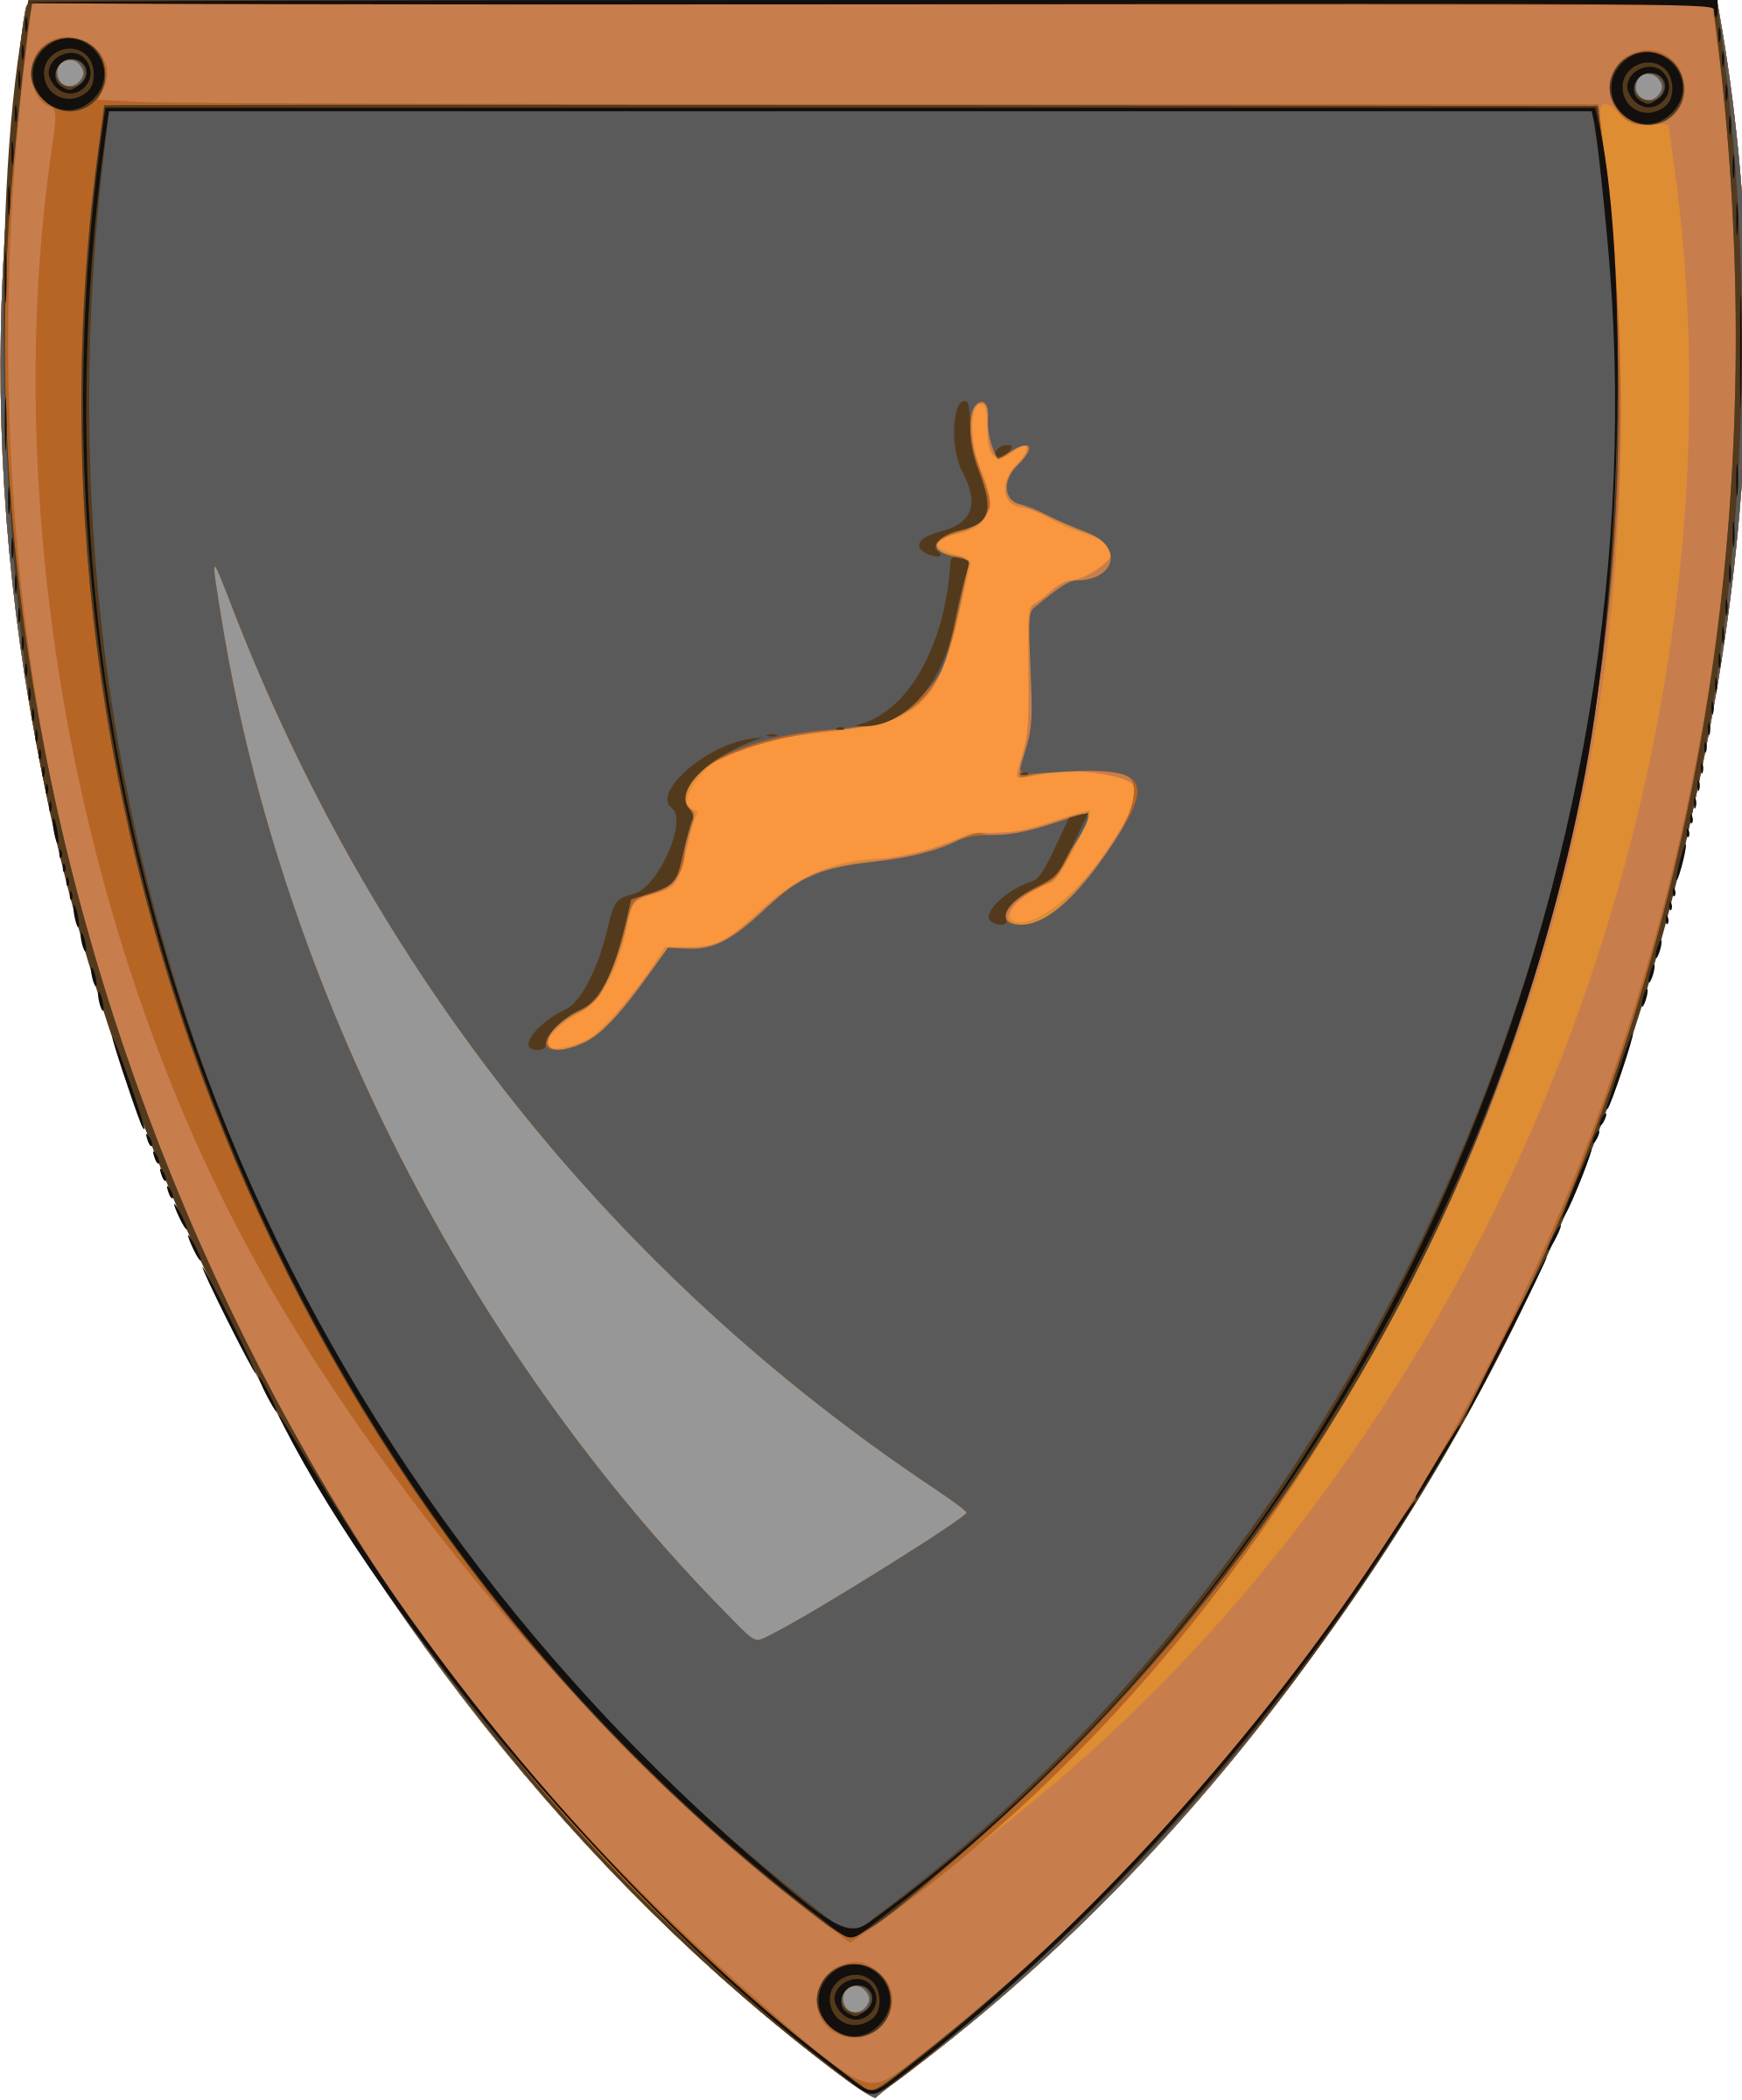 Deer shield by Firkin